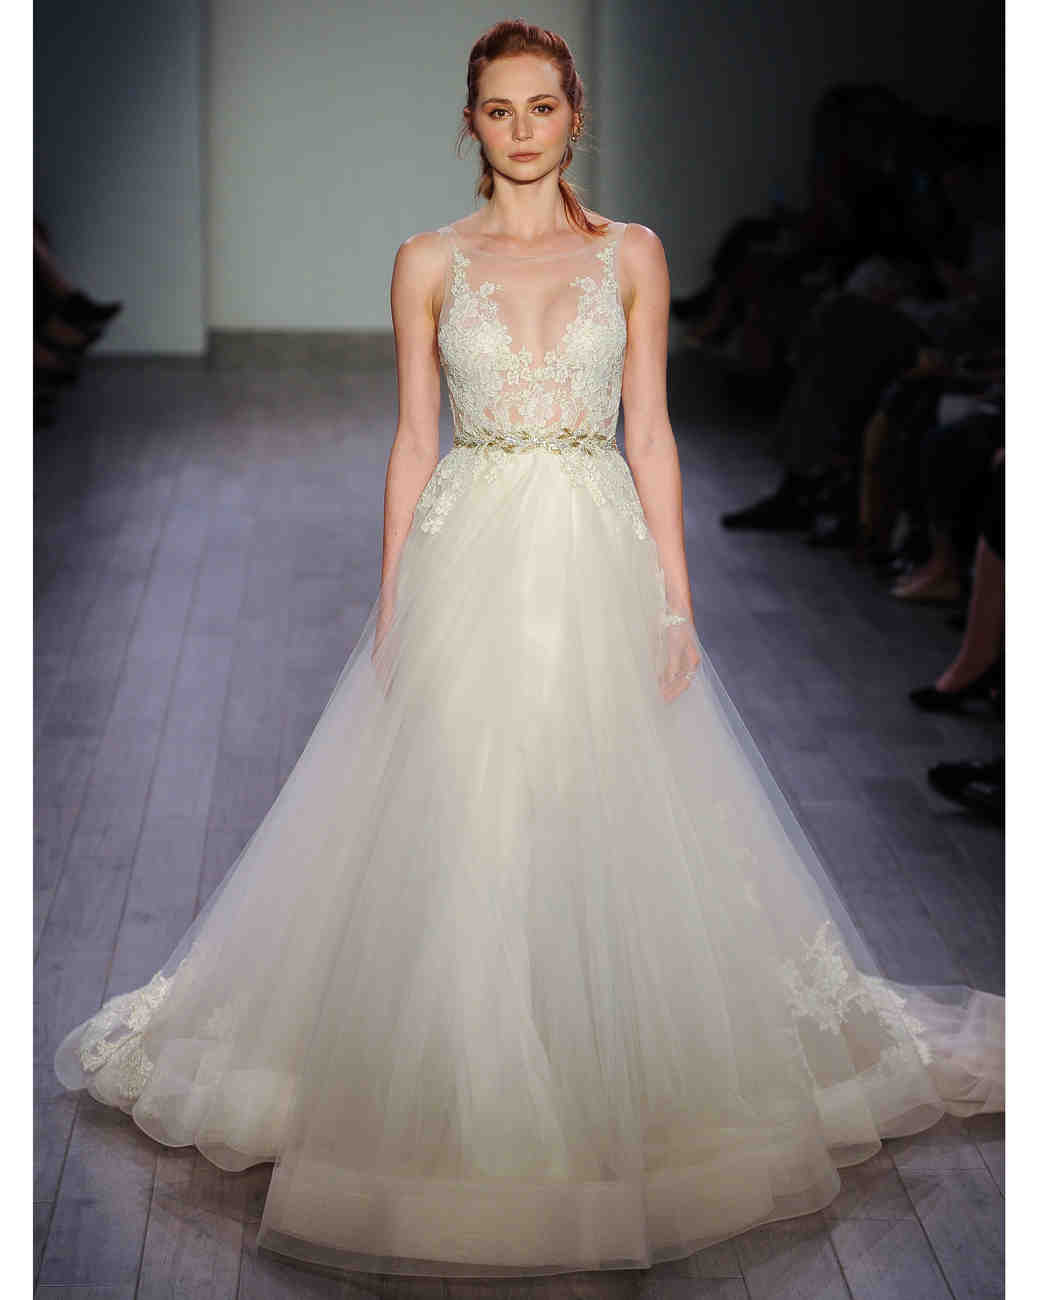 Bridal Designer Lazaro S Latest Designs Start Slideshow 1 Of 17